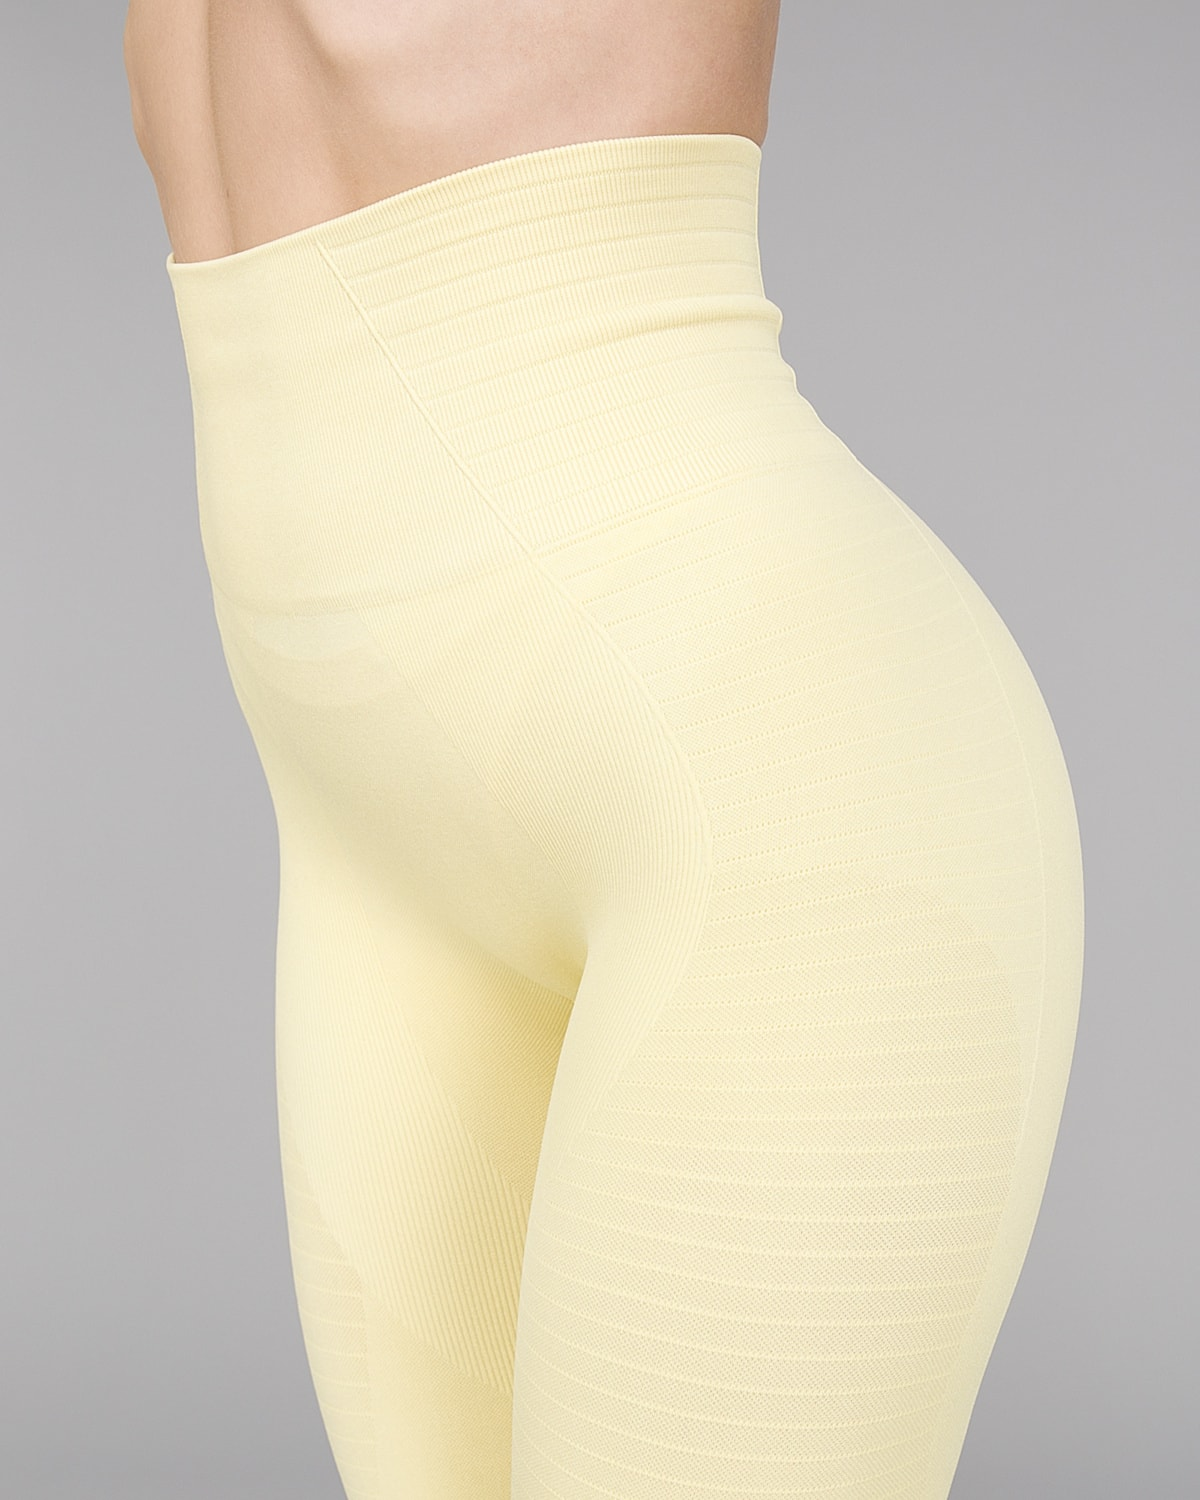 Jerf Gela 2.0 Tights Yellow Pastel16